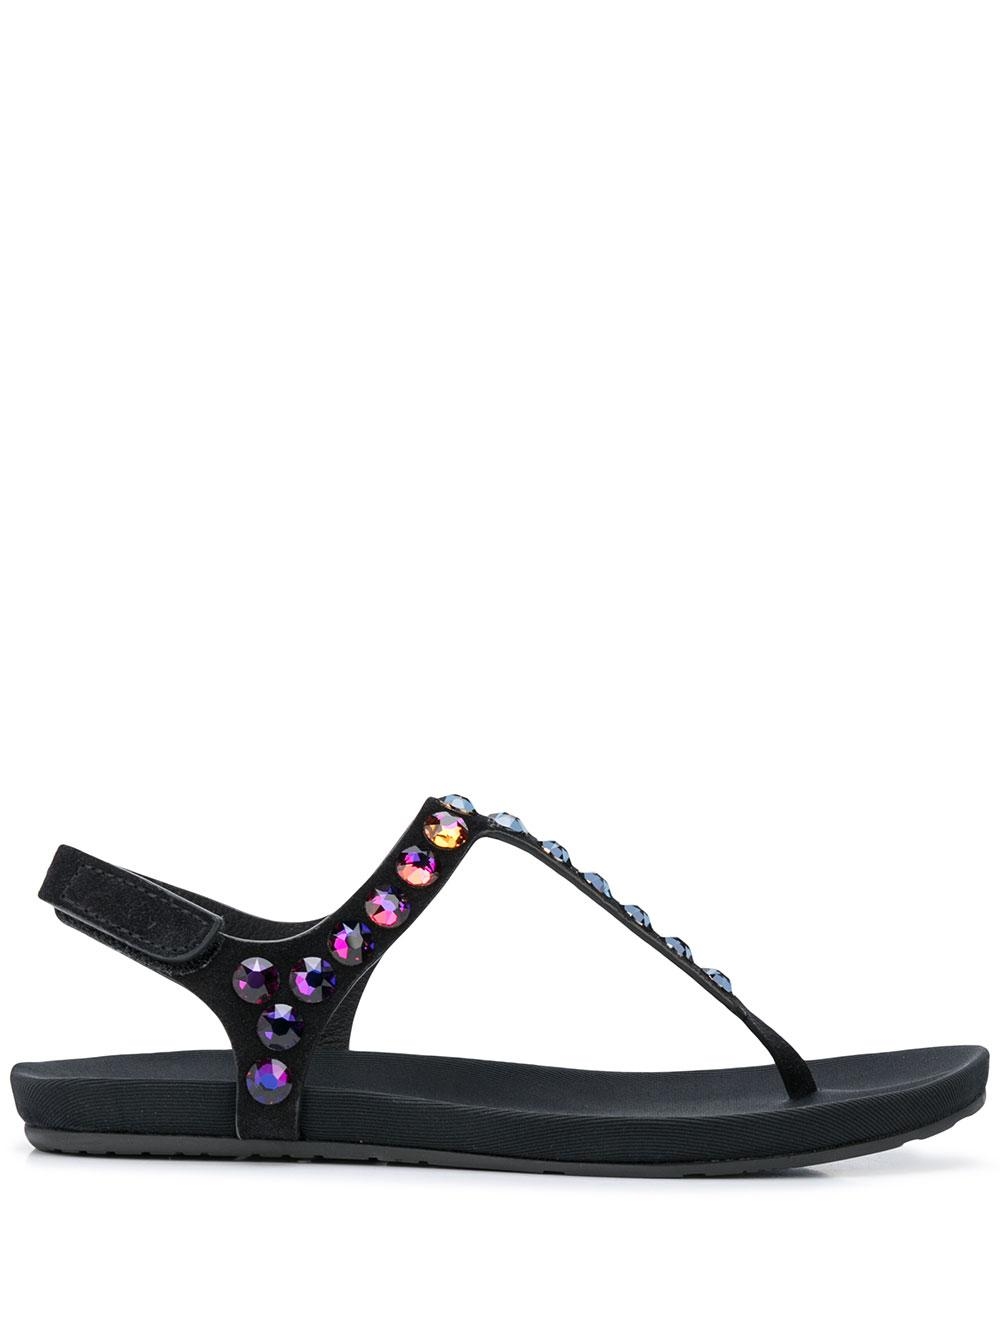 Flat Thong Sandal With Crystals